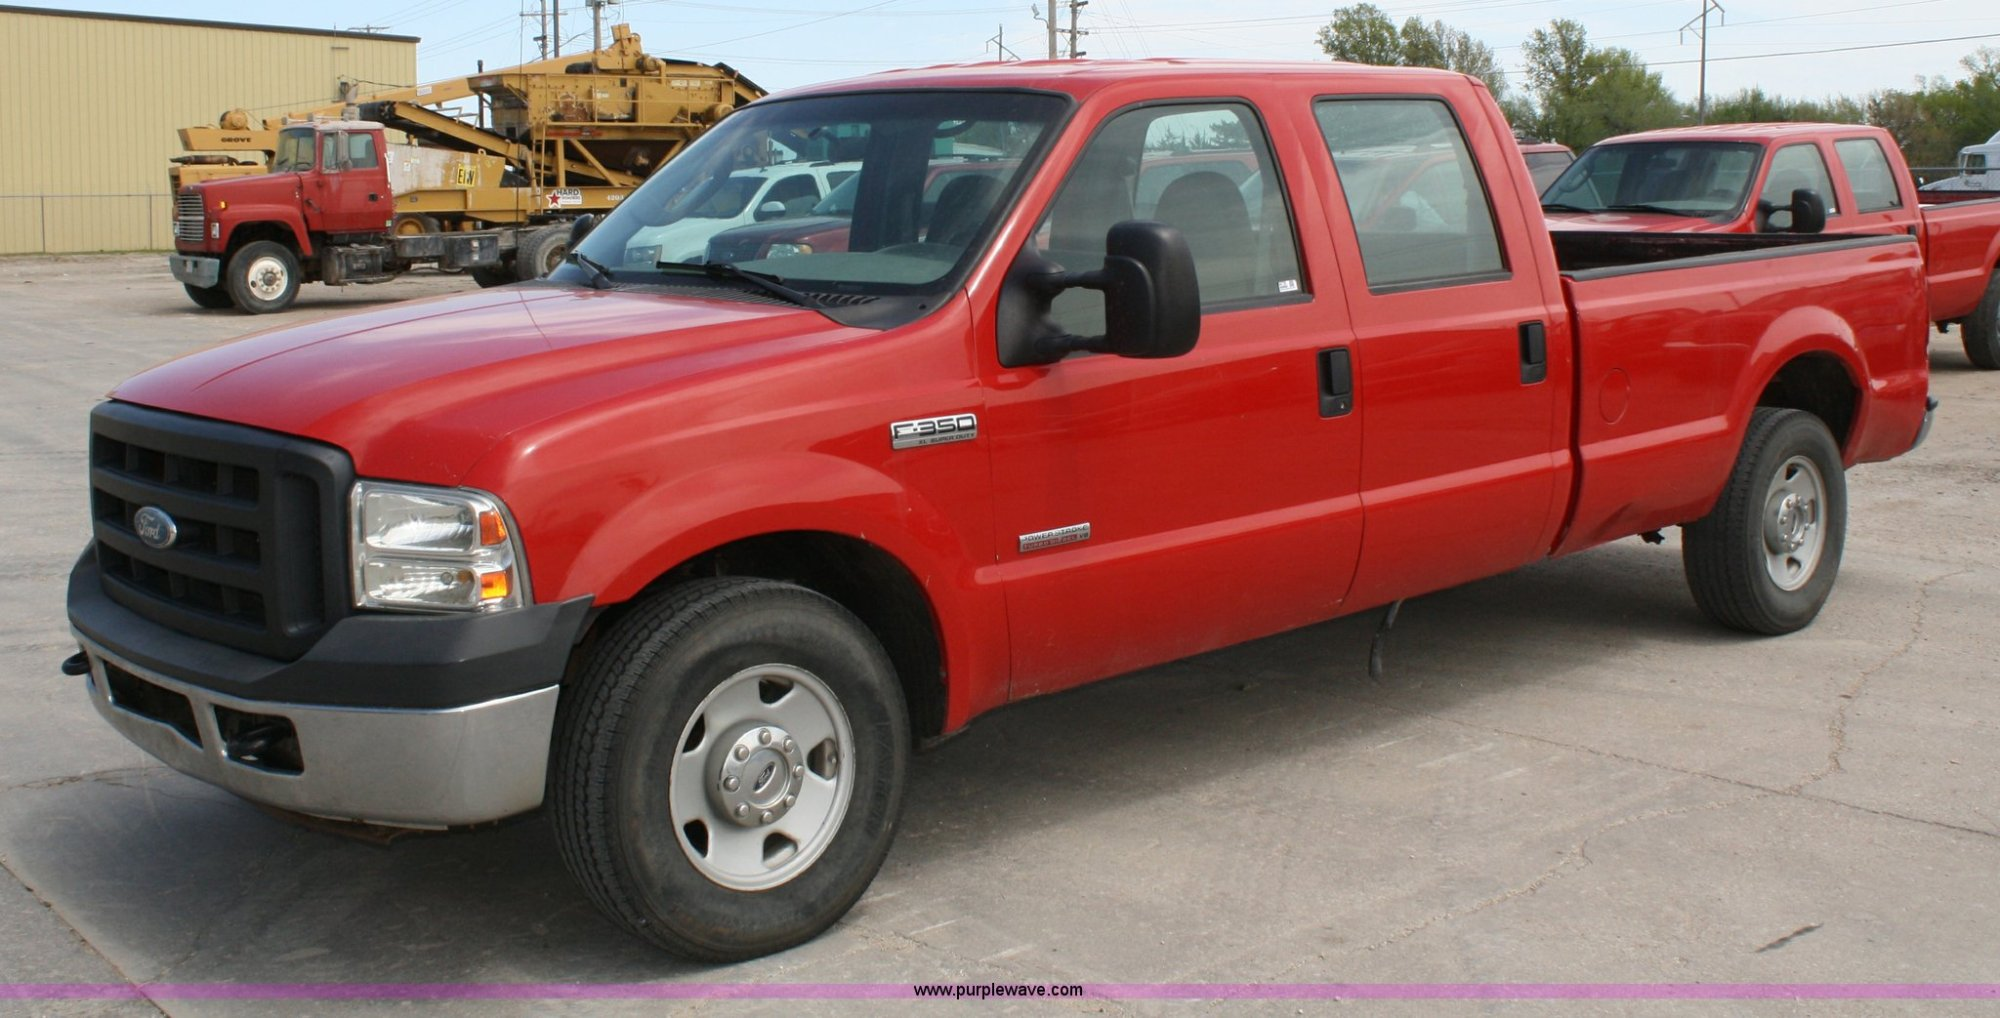 hight resolution of 2006 ford f350 super duty crew cab pickup truck for sale in kansas